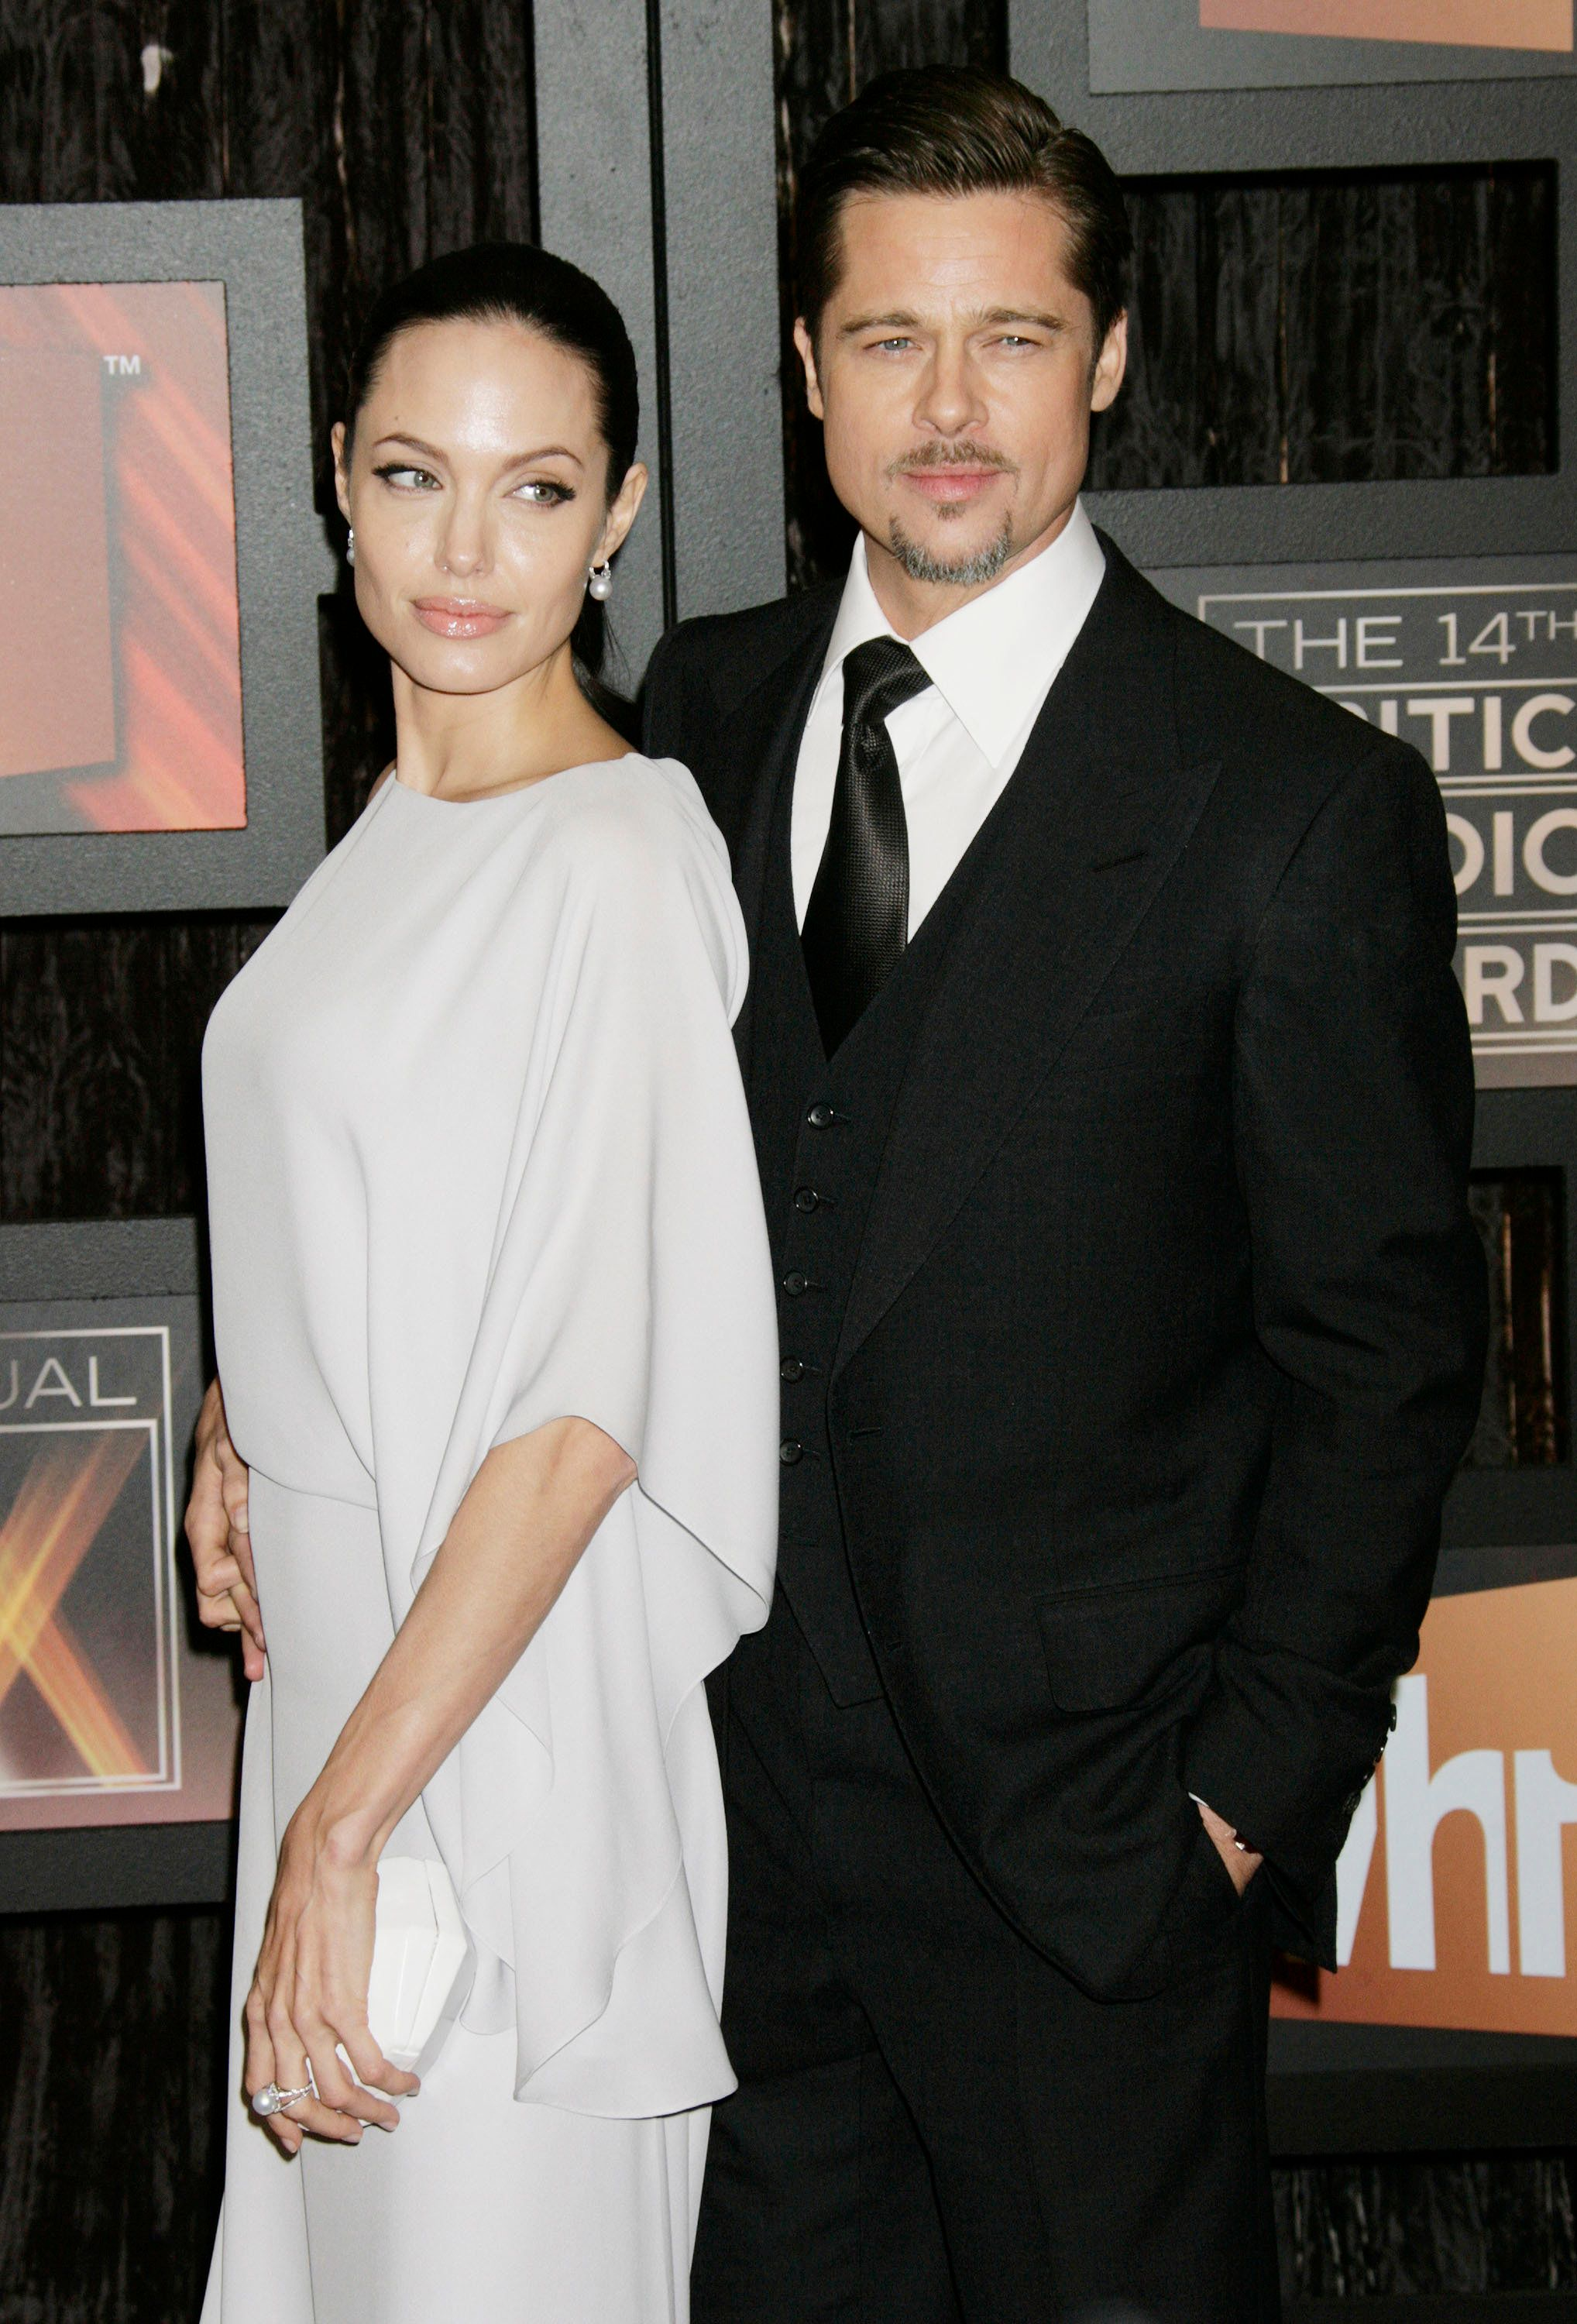 Brad Pitt And Angelina Jolie Reach Custody Agreement, Avoiding